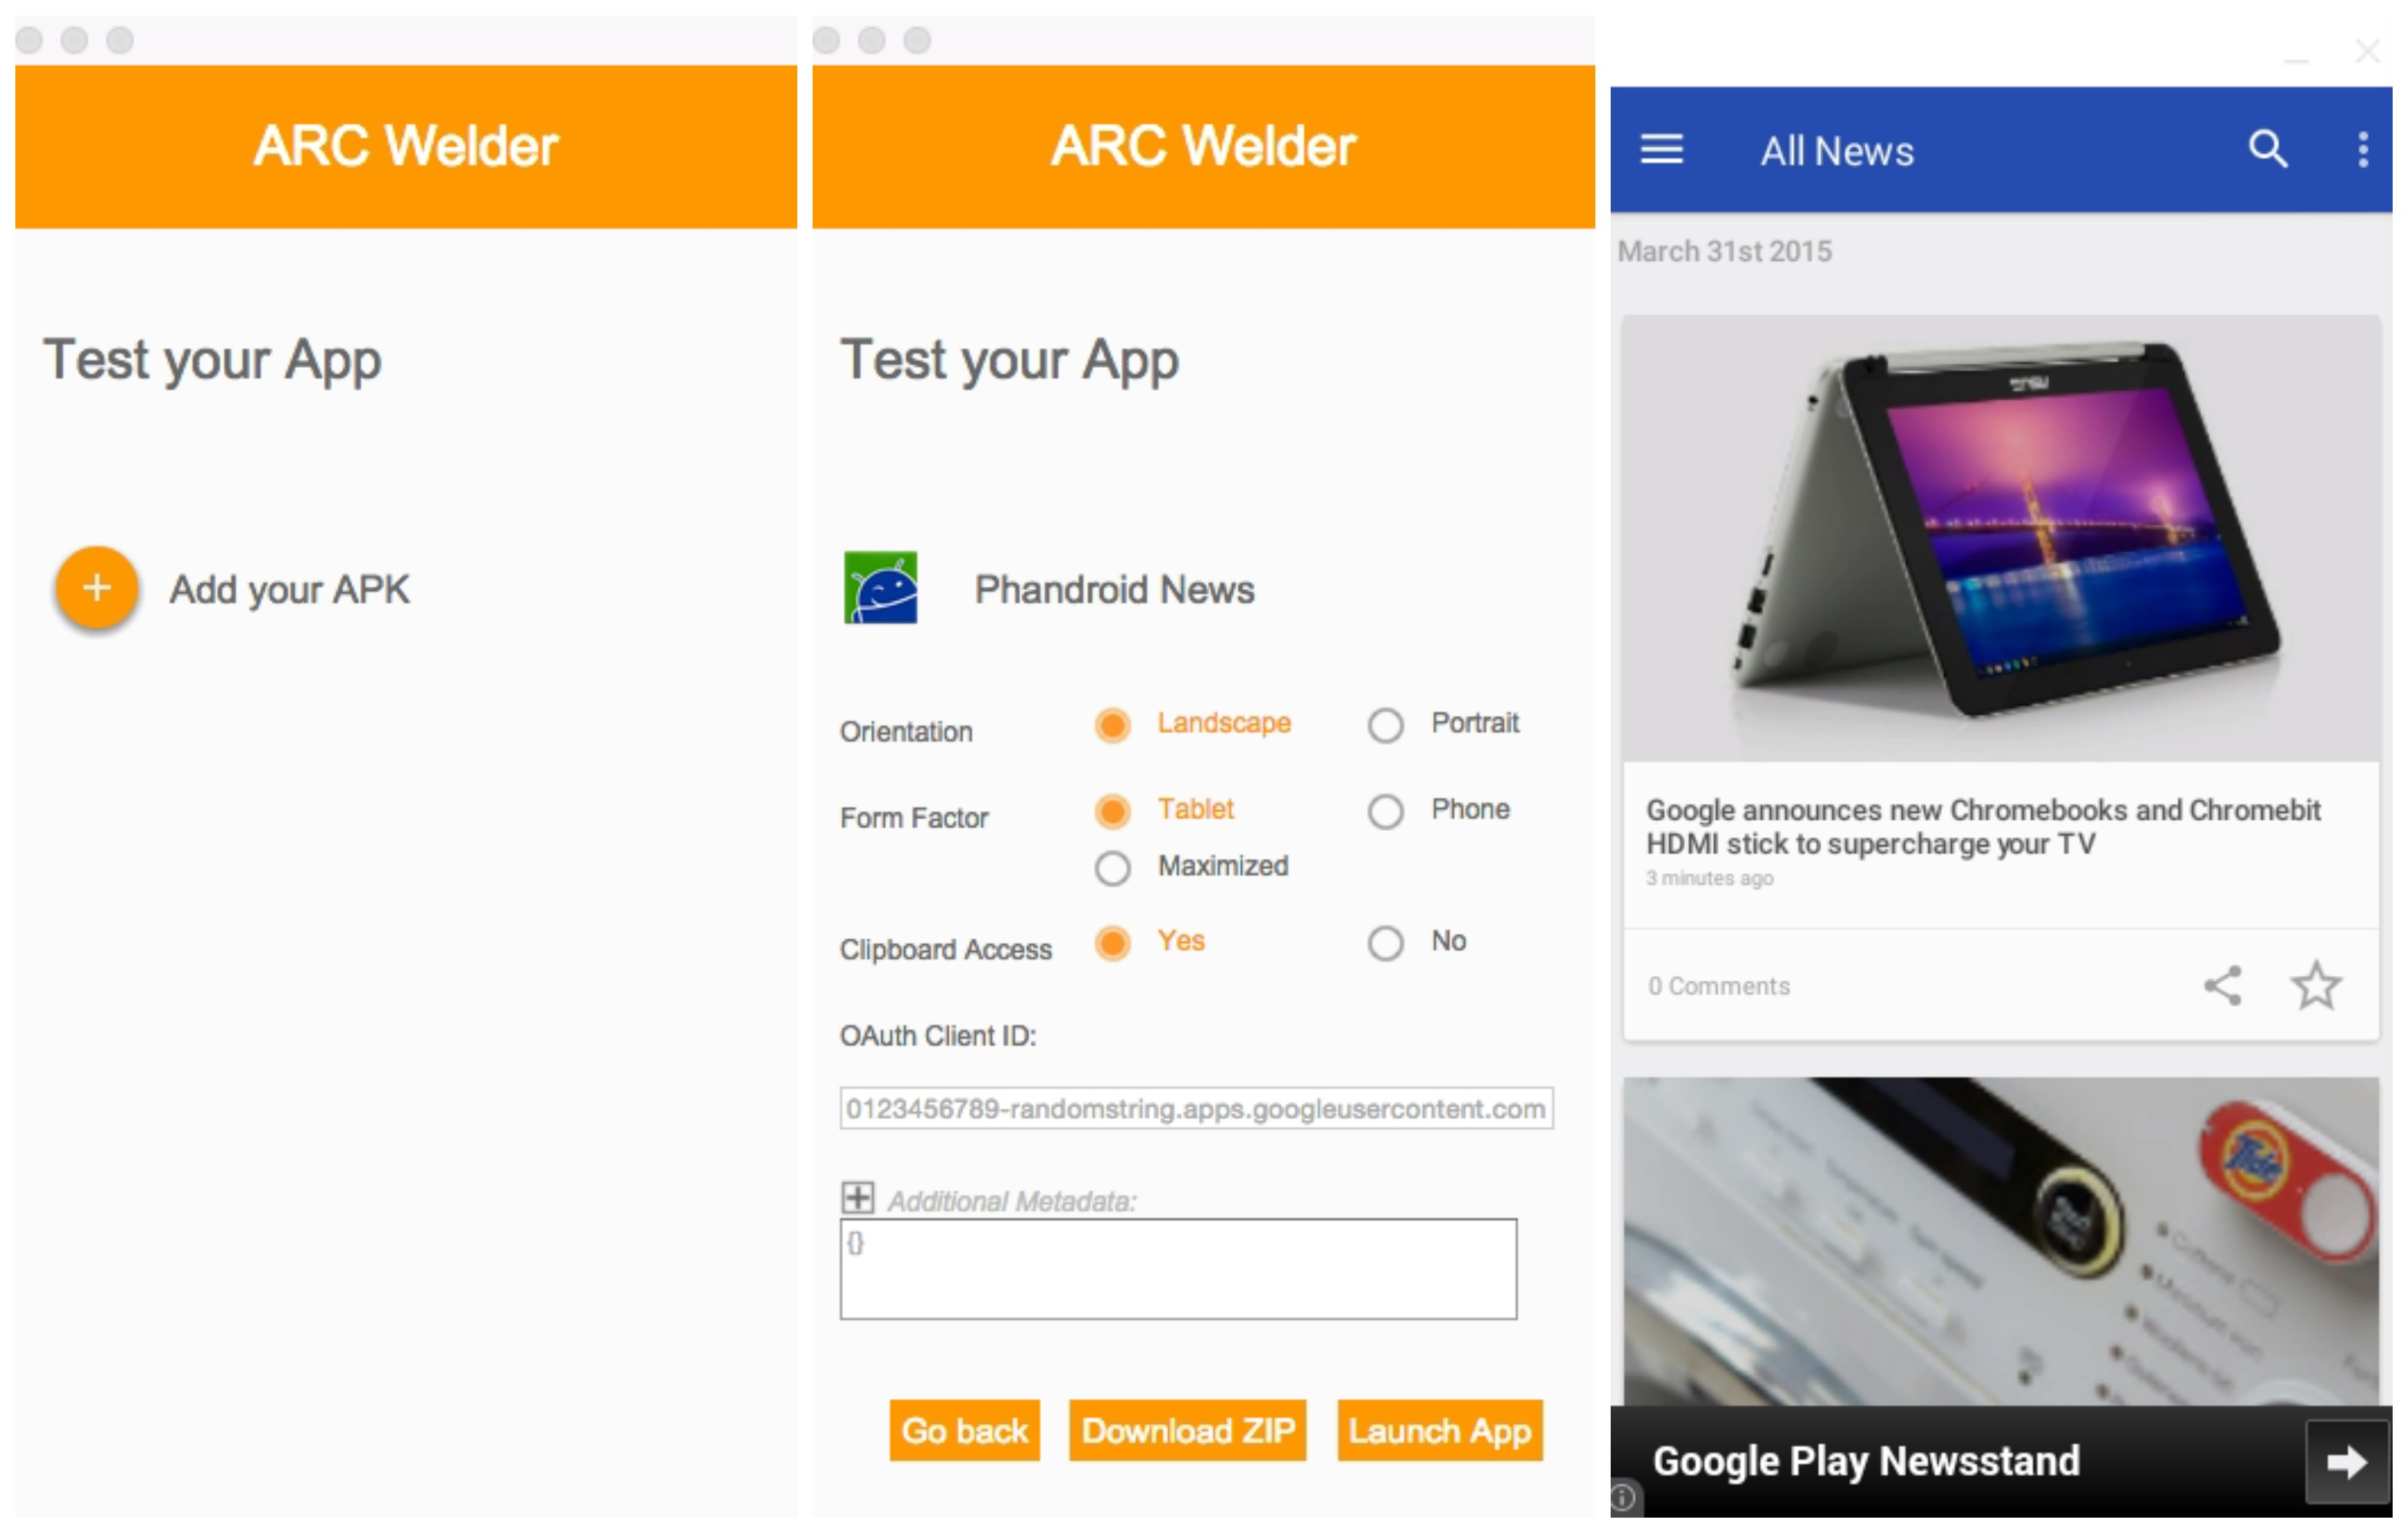 ARC Welder lets you run Android apps in Chrome